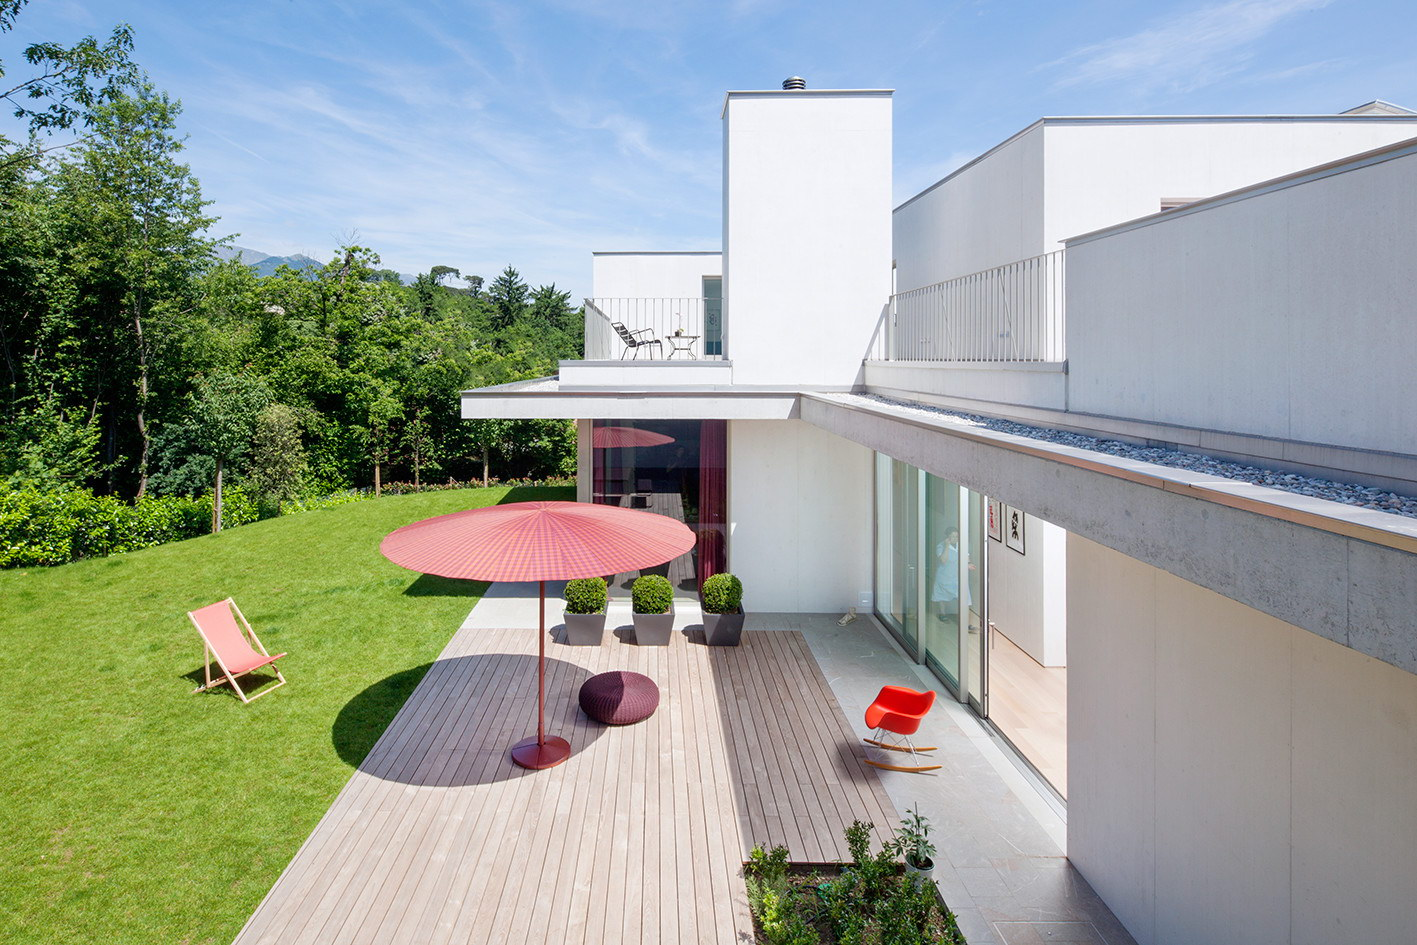 Villa G – Family House in Lugano by SCAPE